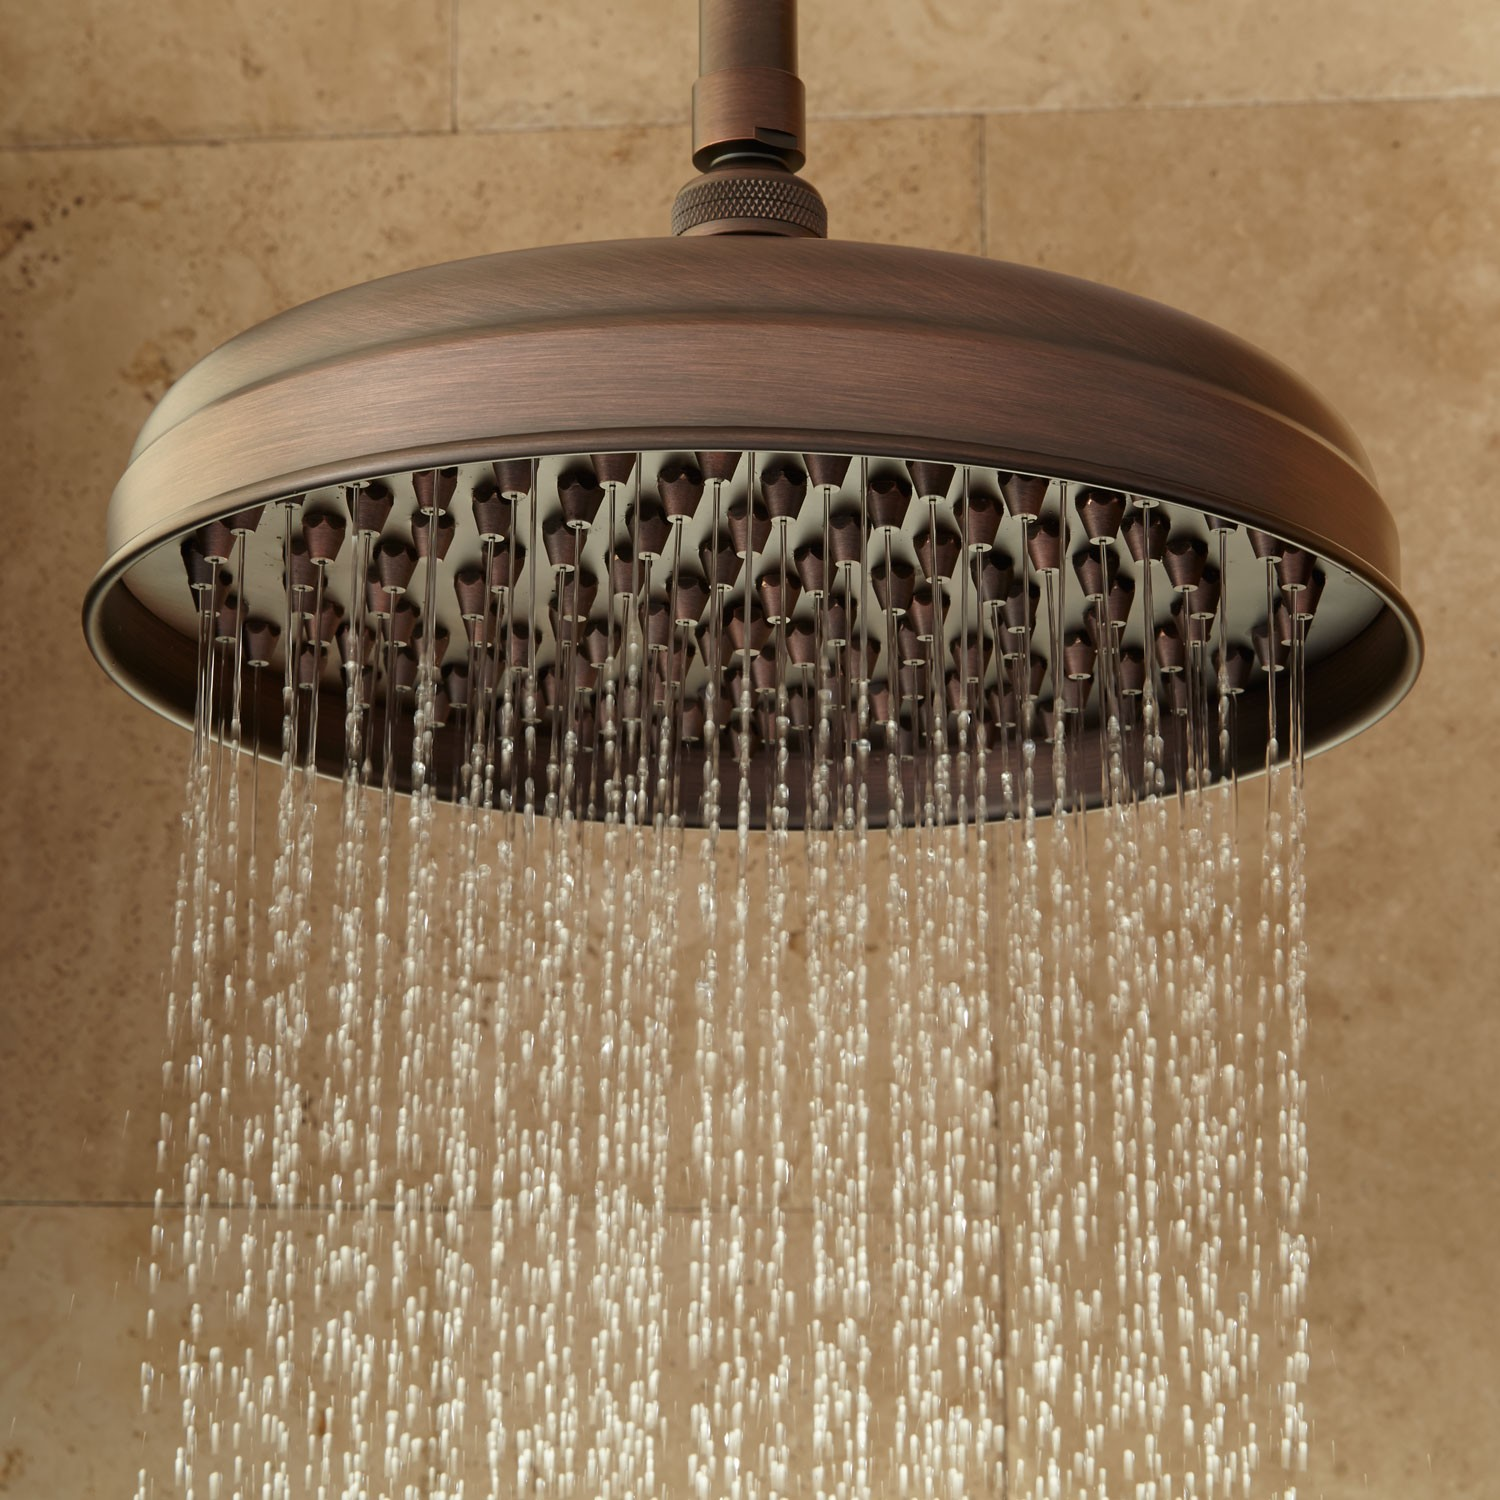 bronze rain shower head - How to Add Rainfall Effect to Your ...